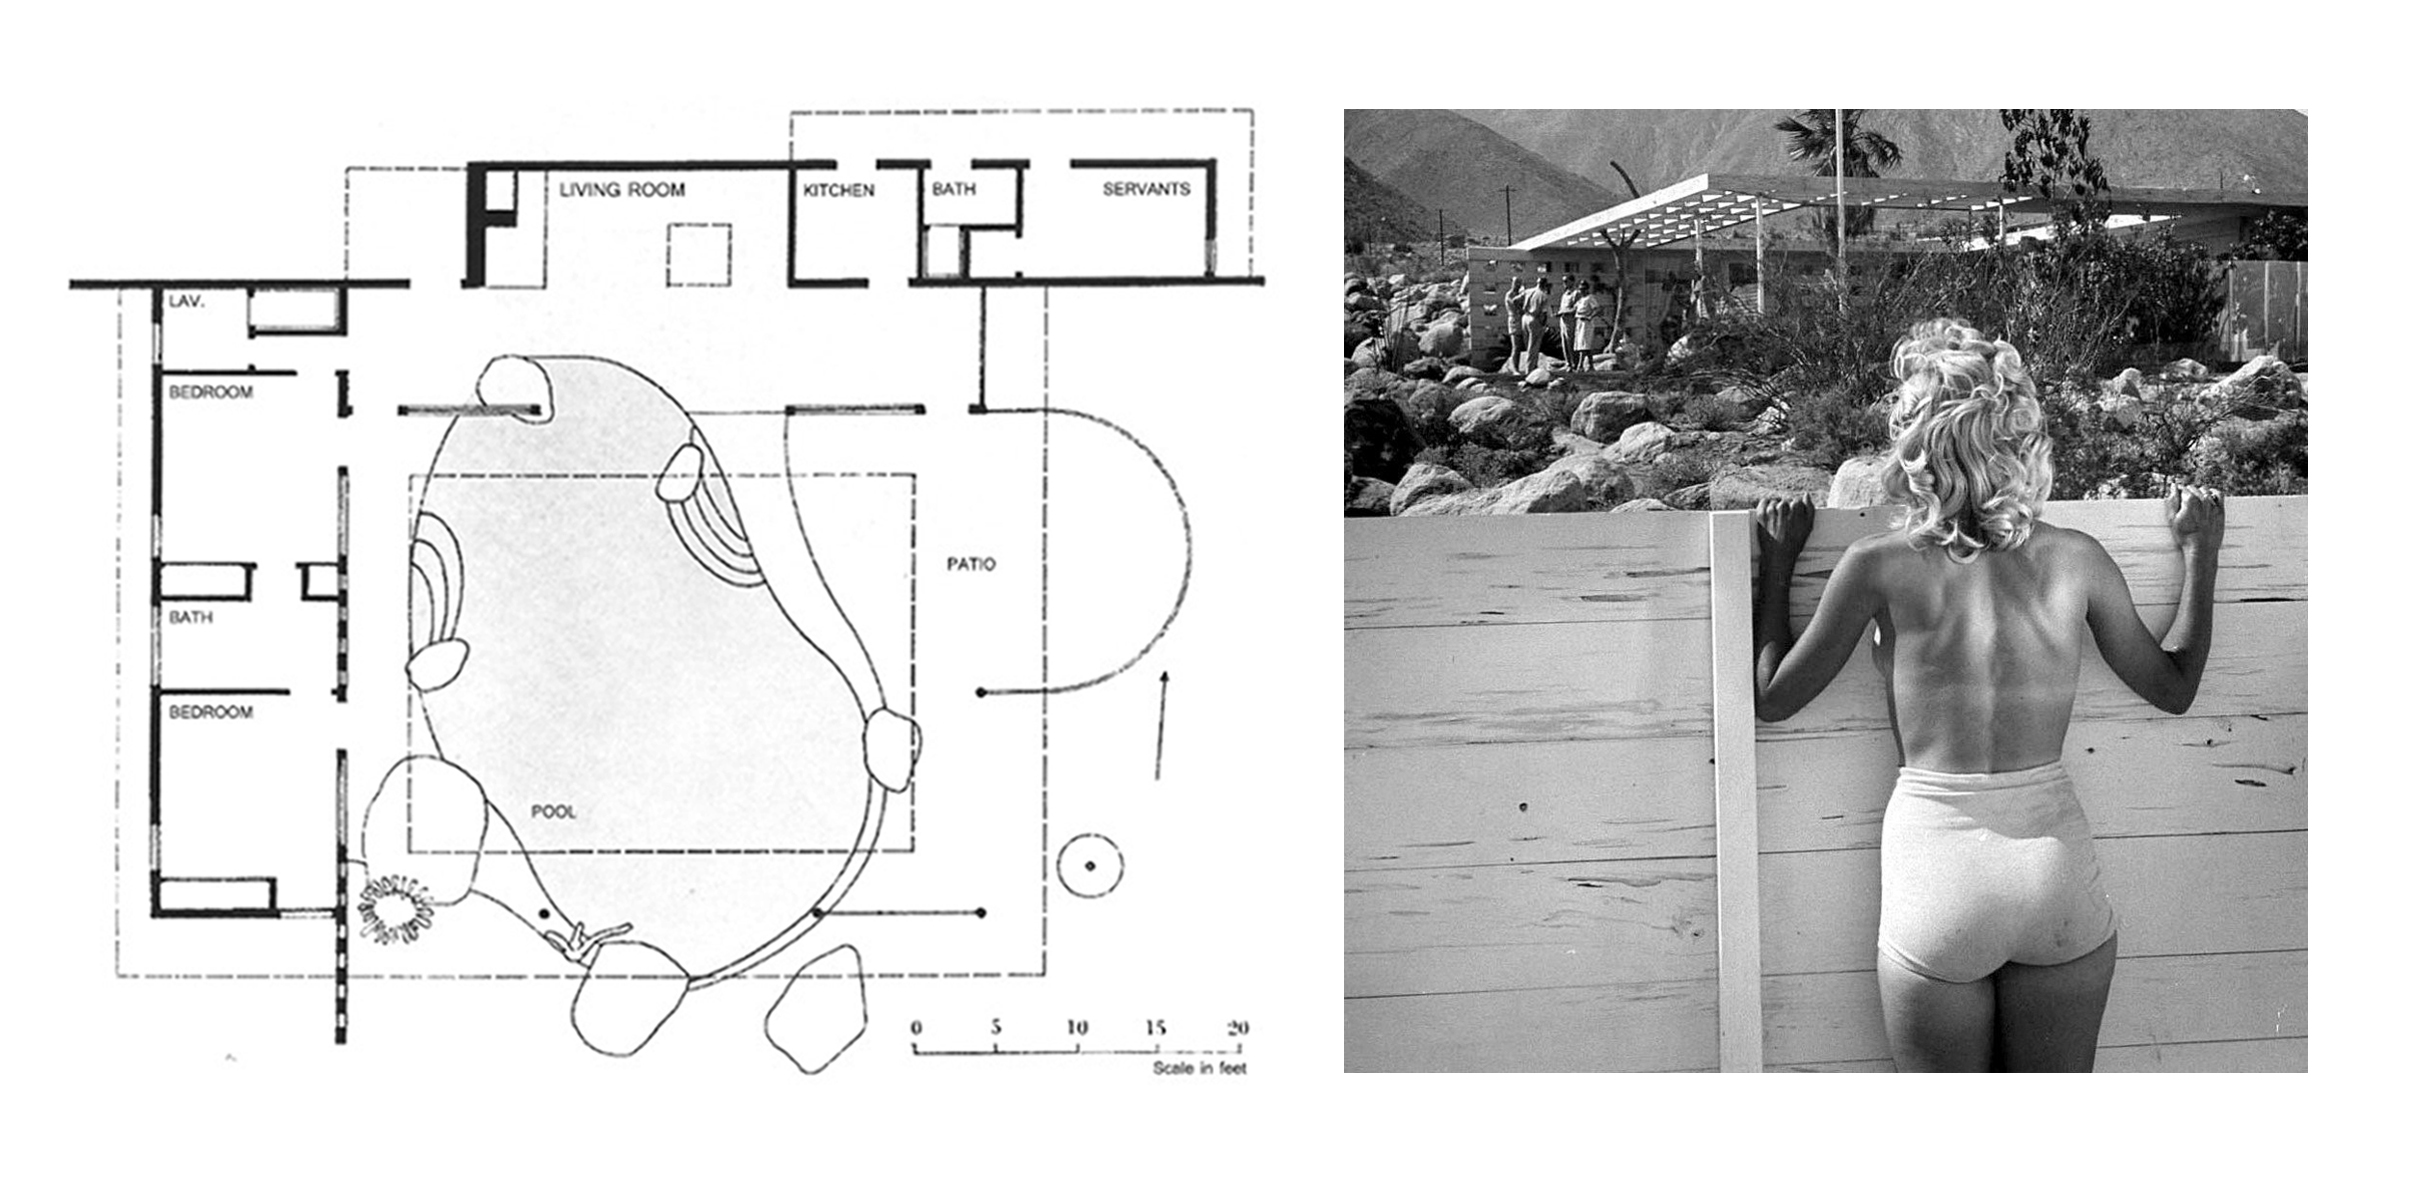 Tour An Iconic Palm Springs Home The Loewy House In 3d